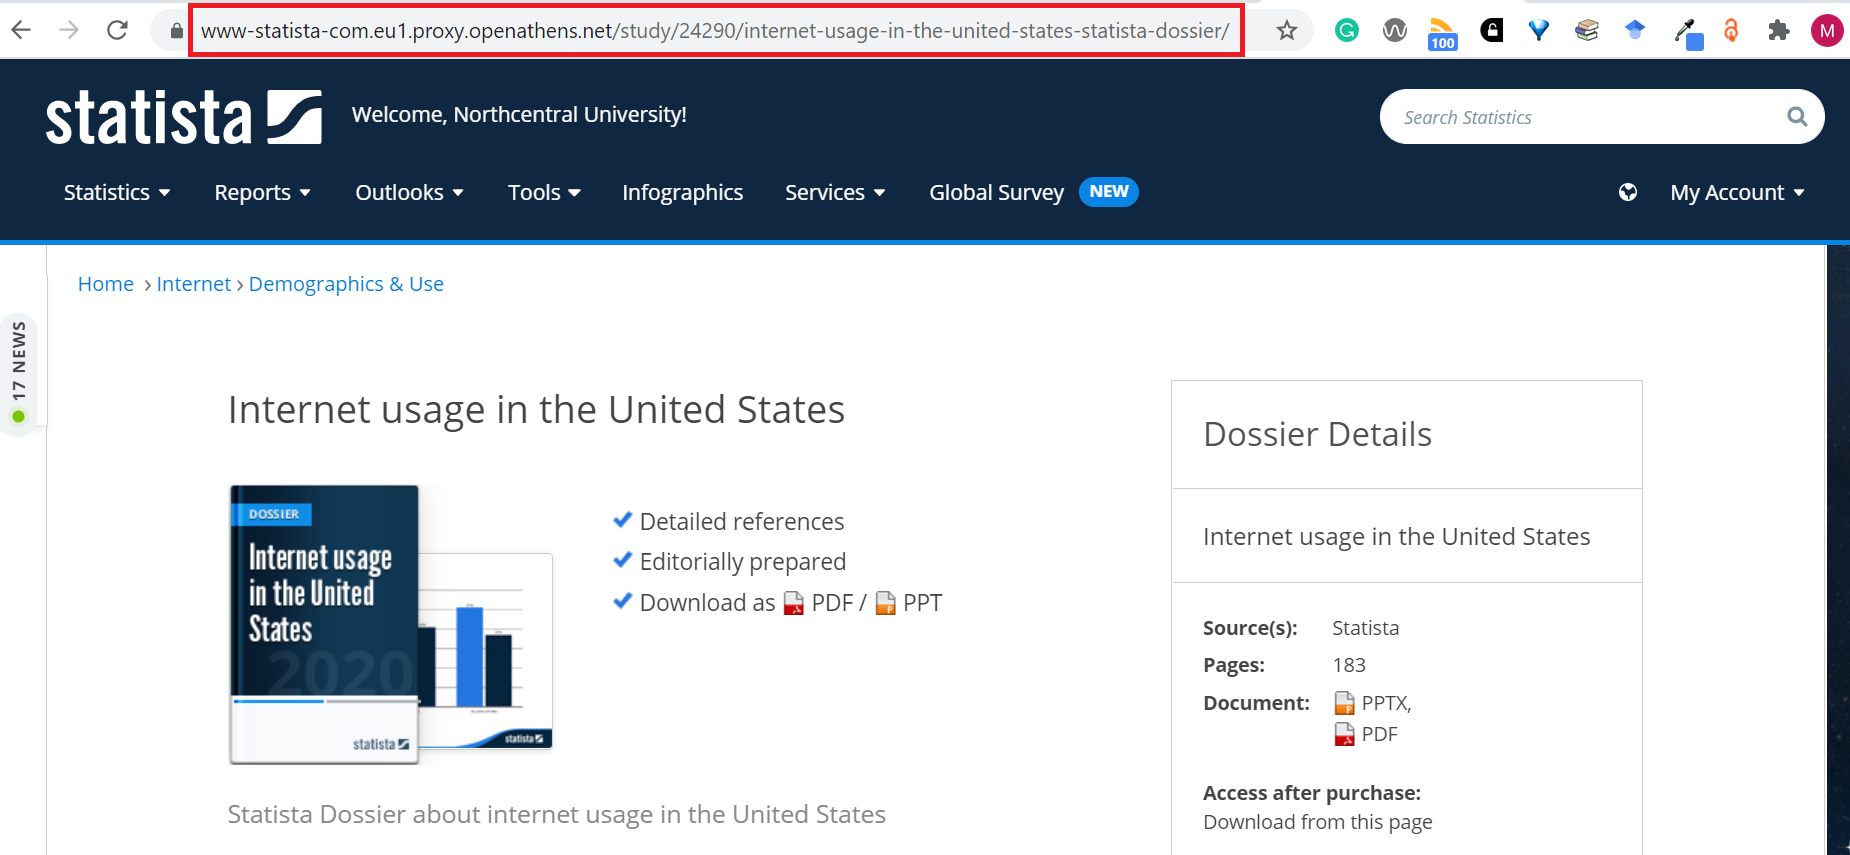 Obtaining permalink for a Statista resource using the URL link in the address bar